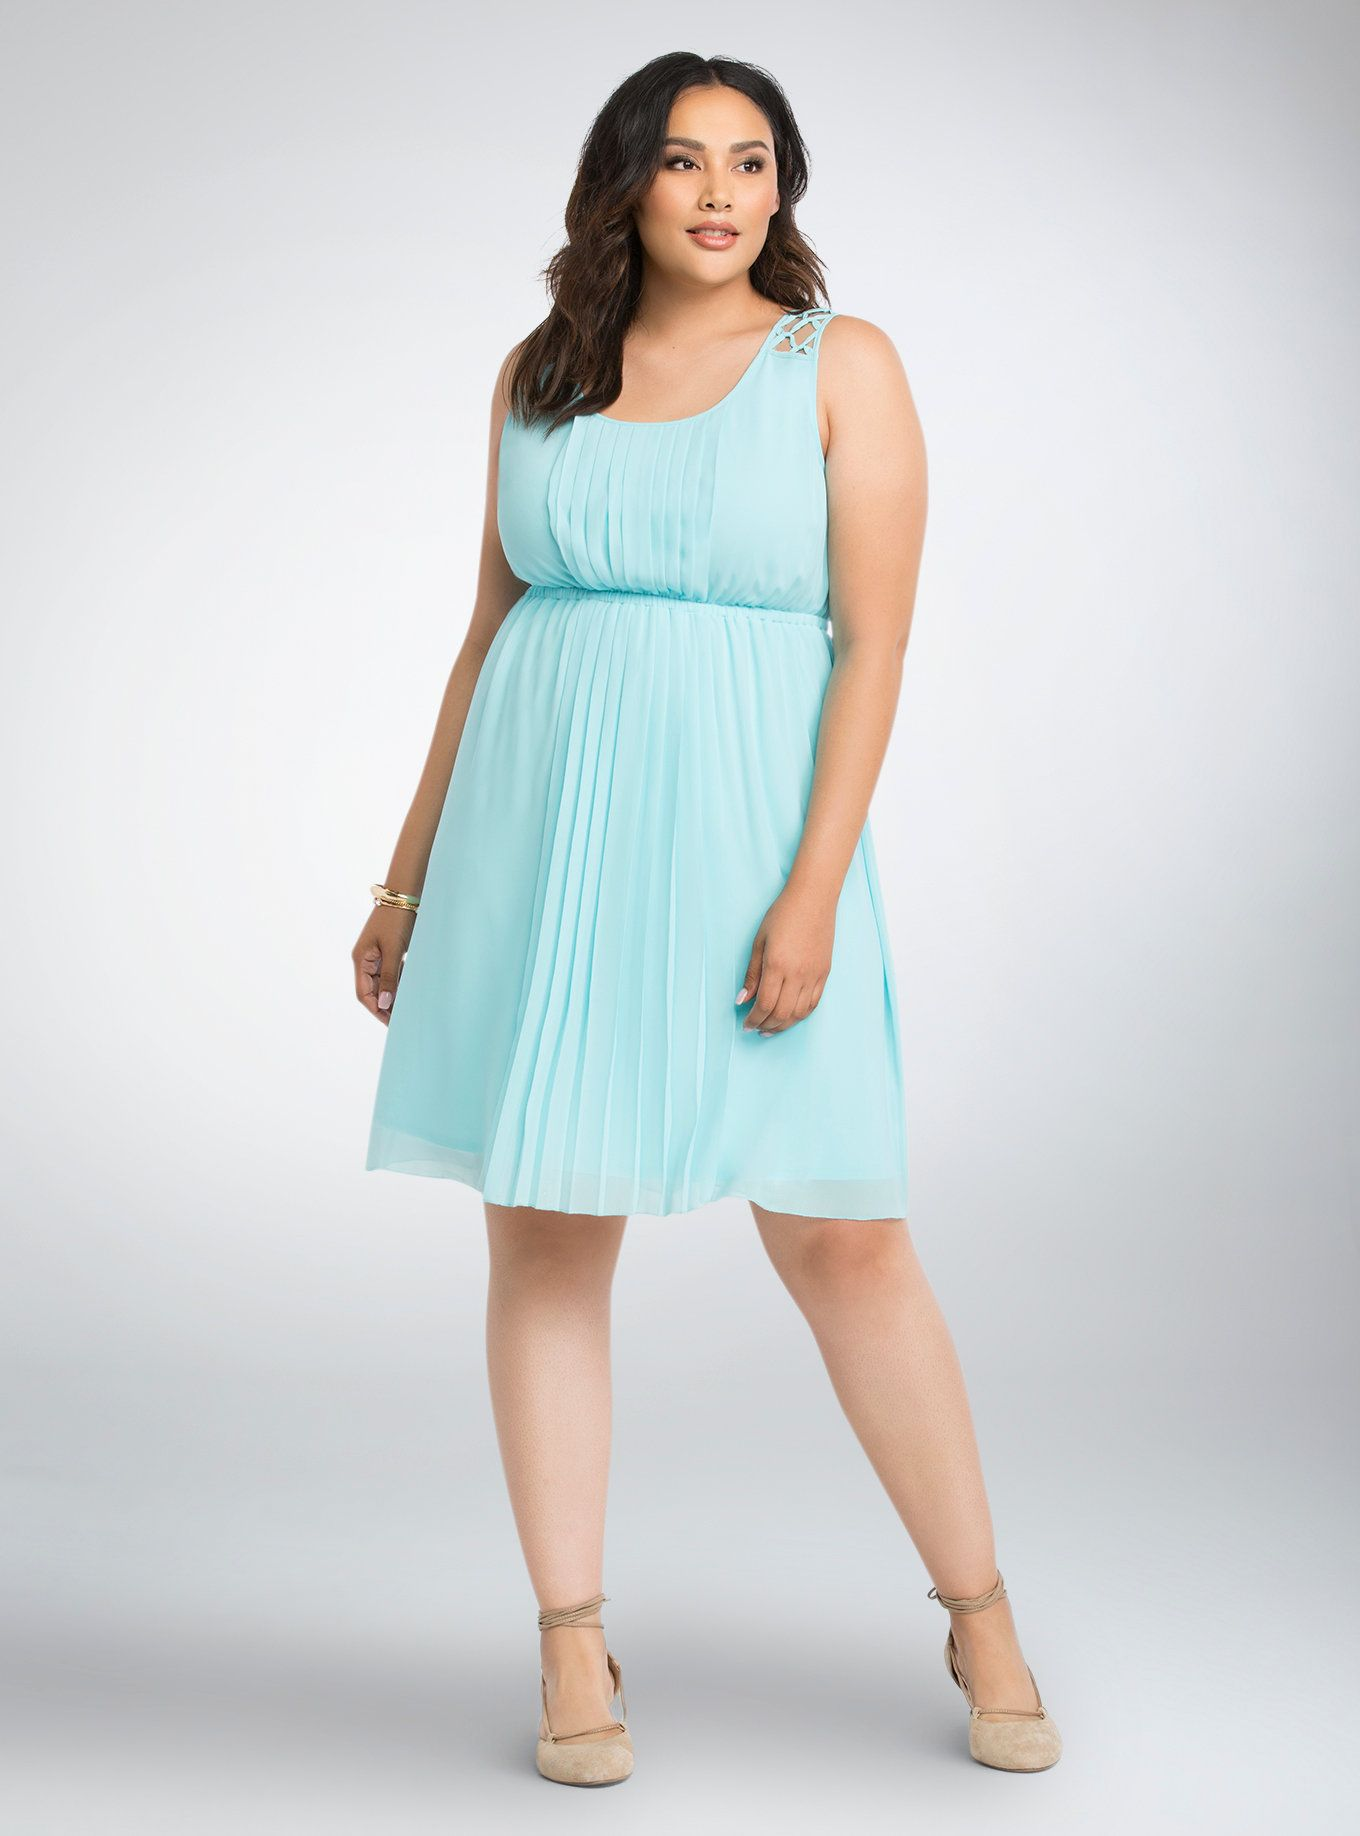 Pleated Lattice Strap Dress | Torrid, Fashion clothes and Clothes